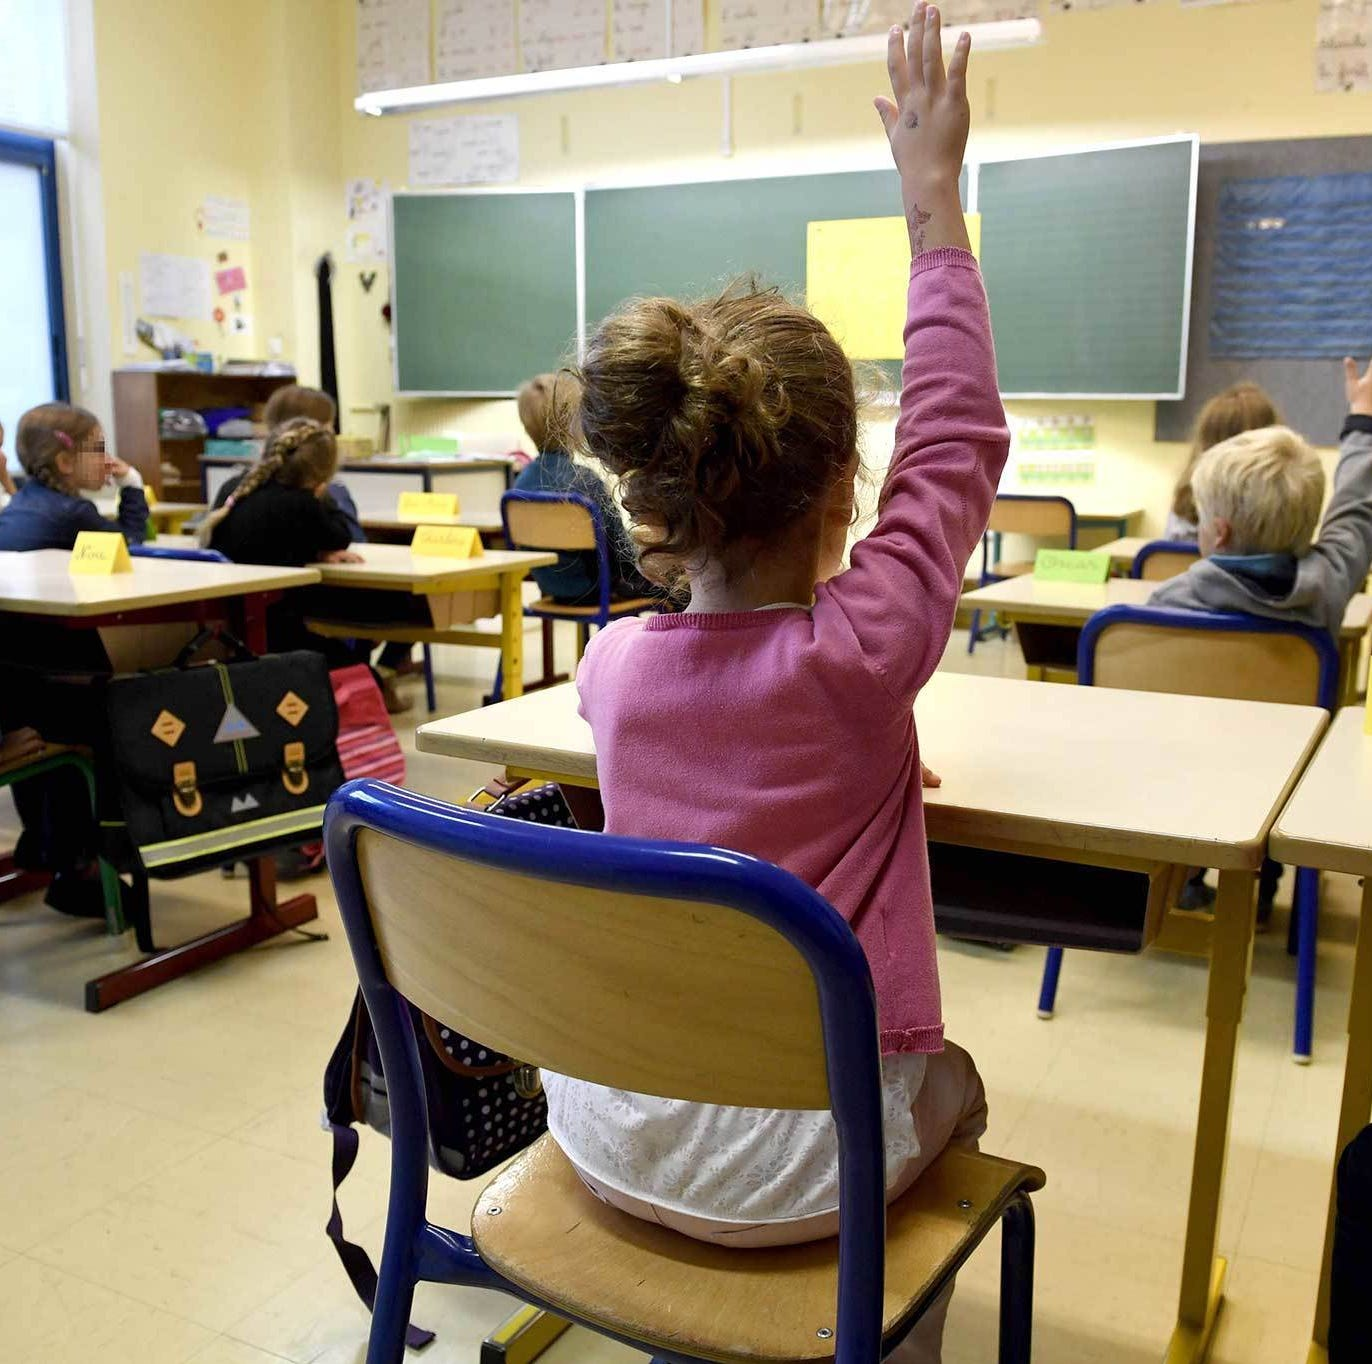 Report: Michigan not on track to be a top 10 state in K-12